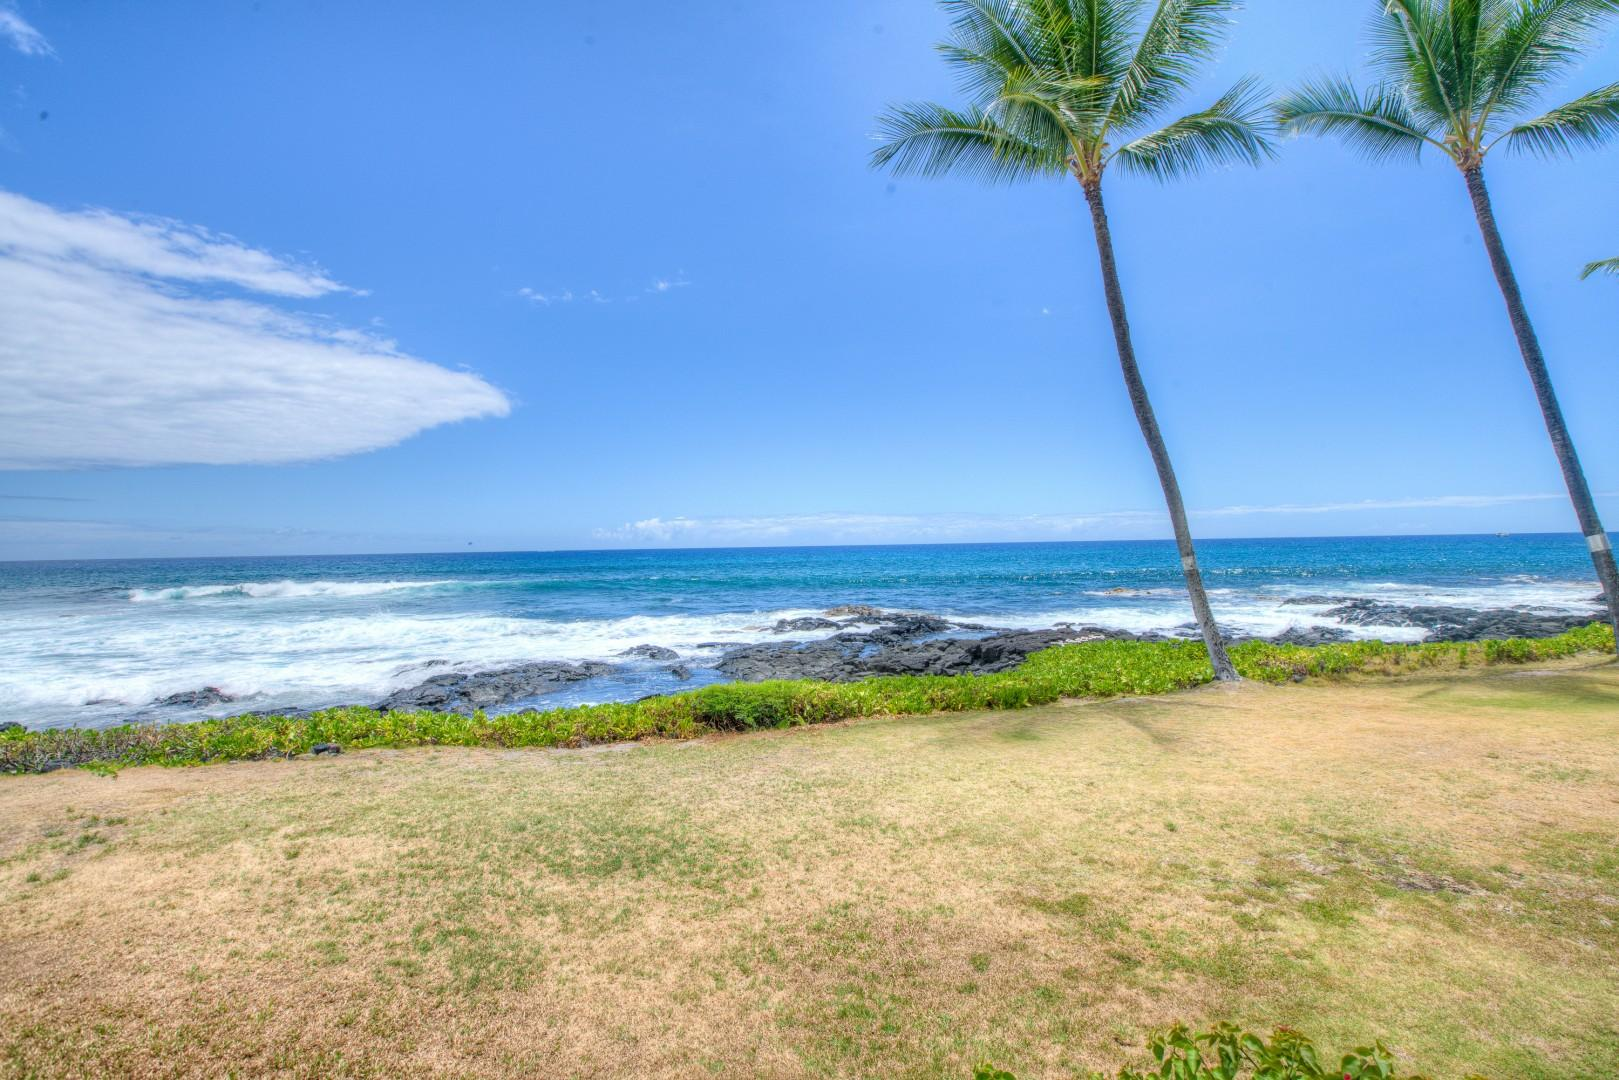 Looking West from the Beach in front of the Kona Reef Complex.